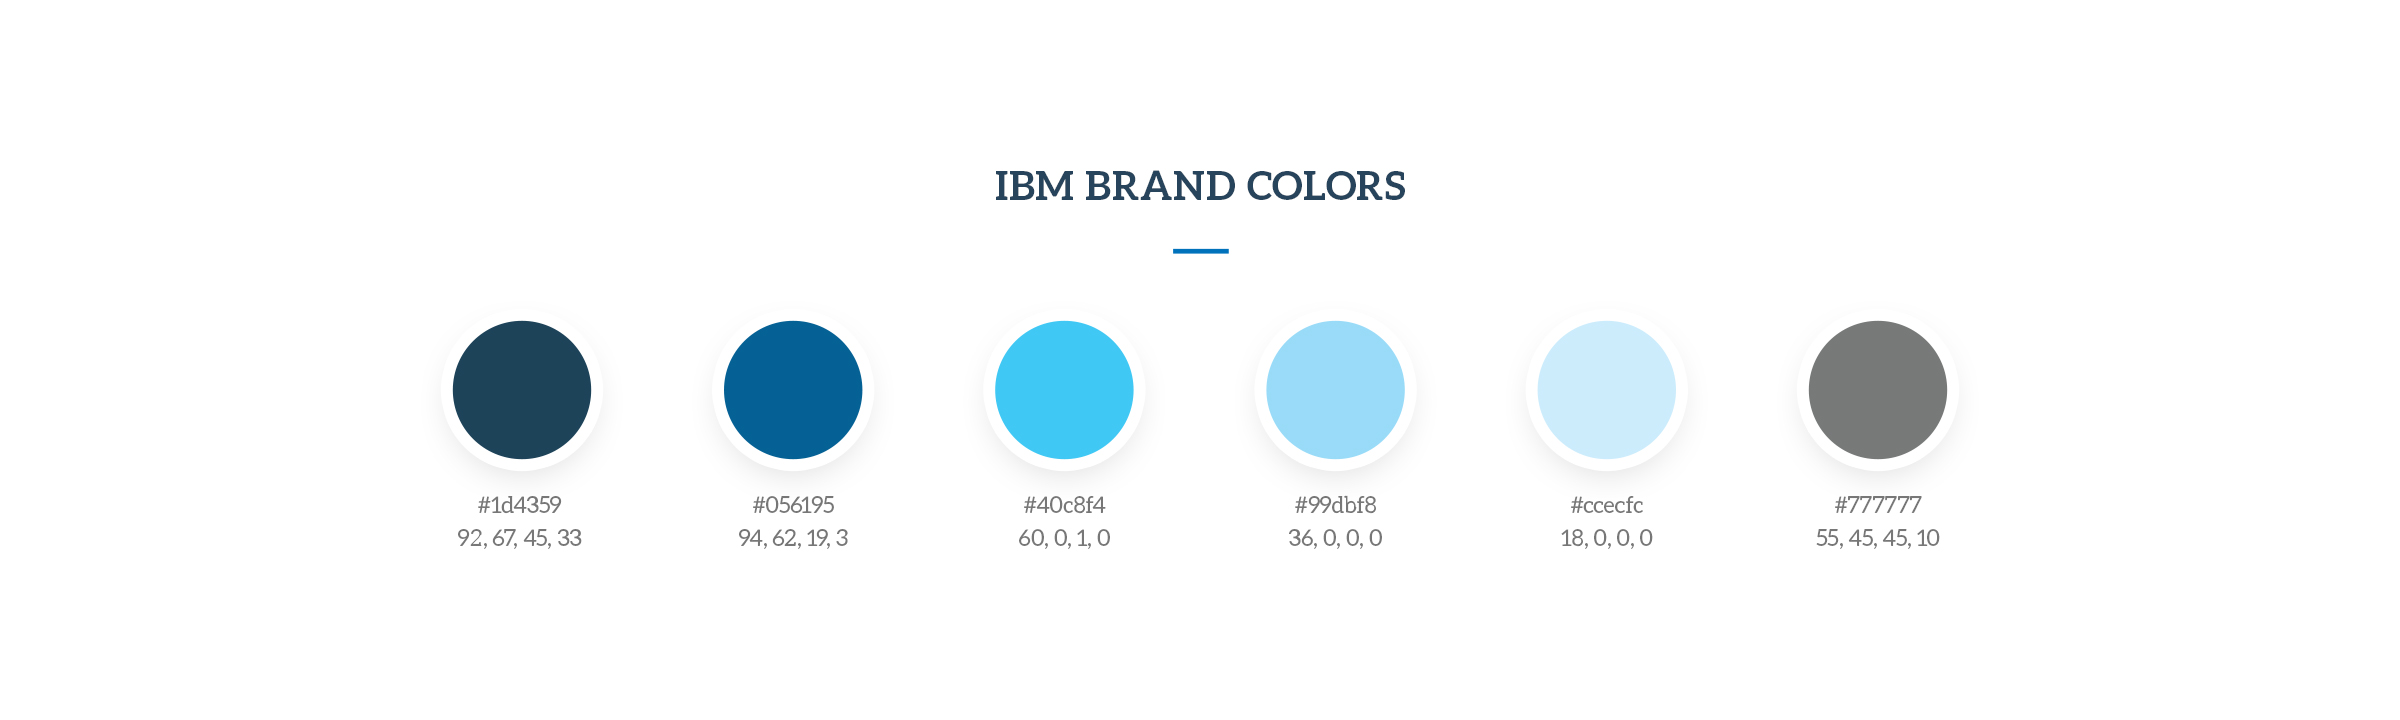 IBM-Logo-Design-2-brand-colors